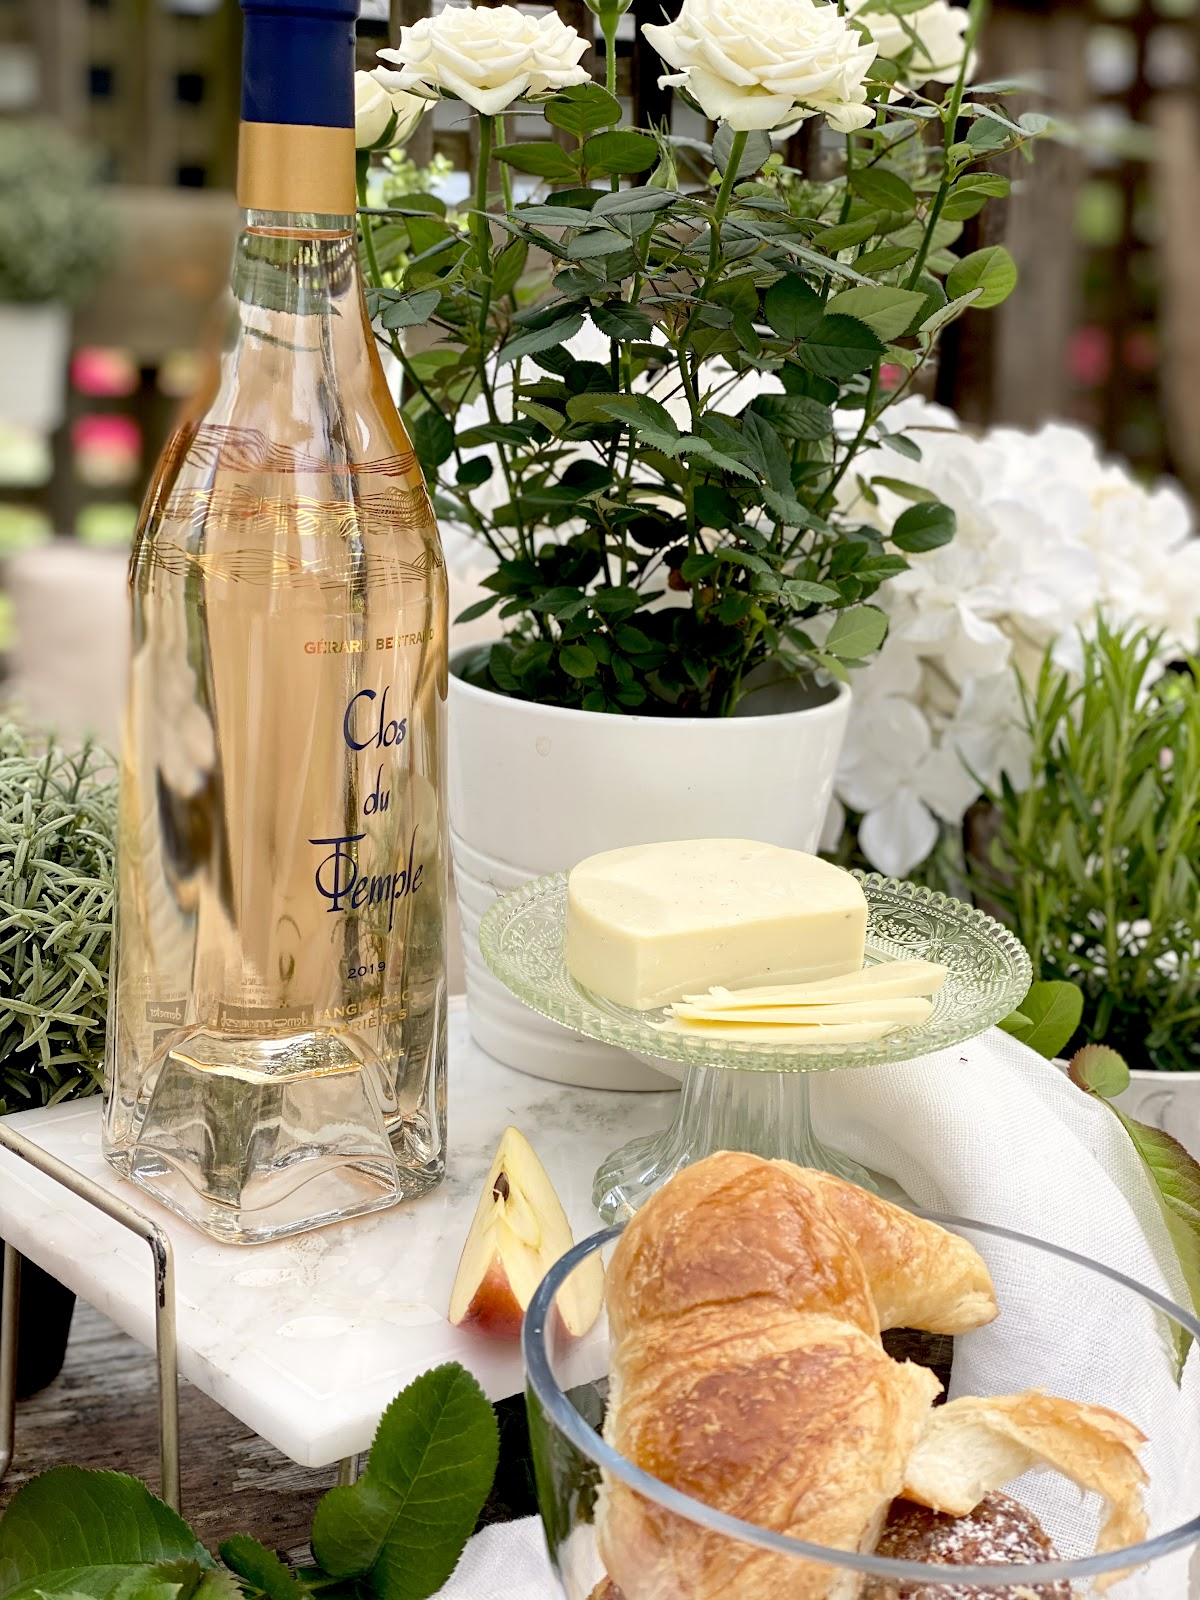 alison kent the home kitchen 5 week series blog on rose wine with barb wild of the good wine gal rose wines selection featuring clos du temple gerard bertrand